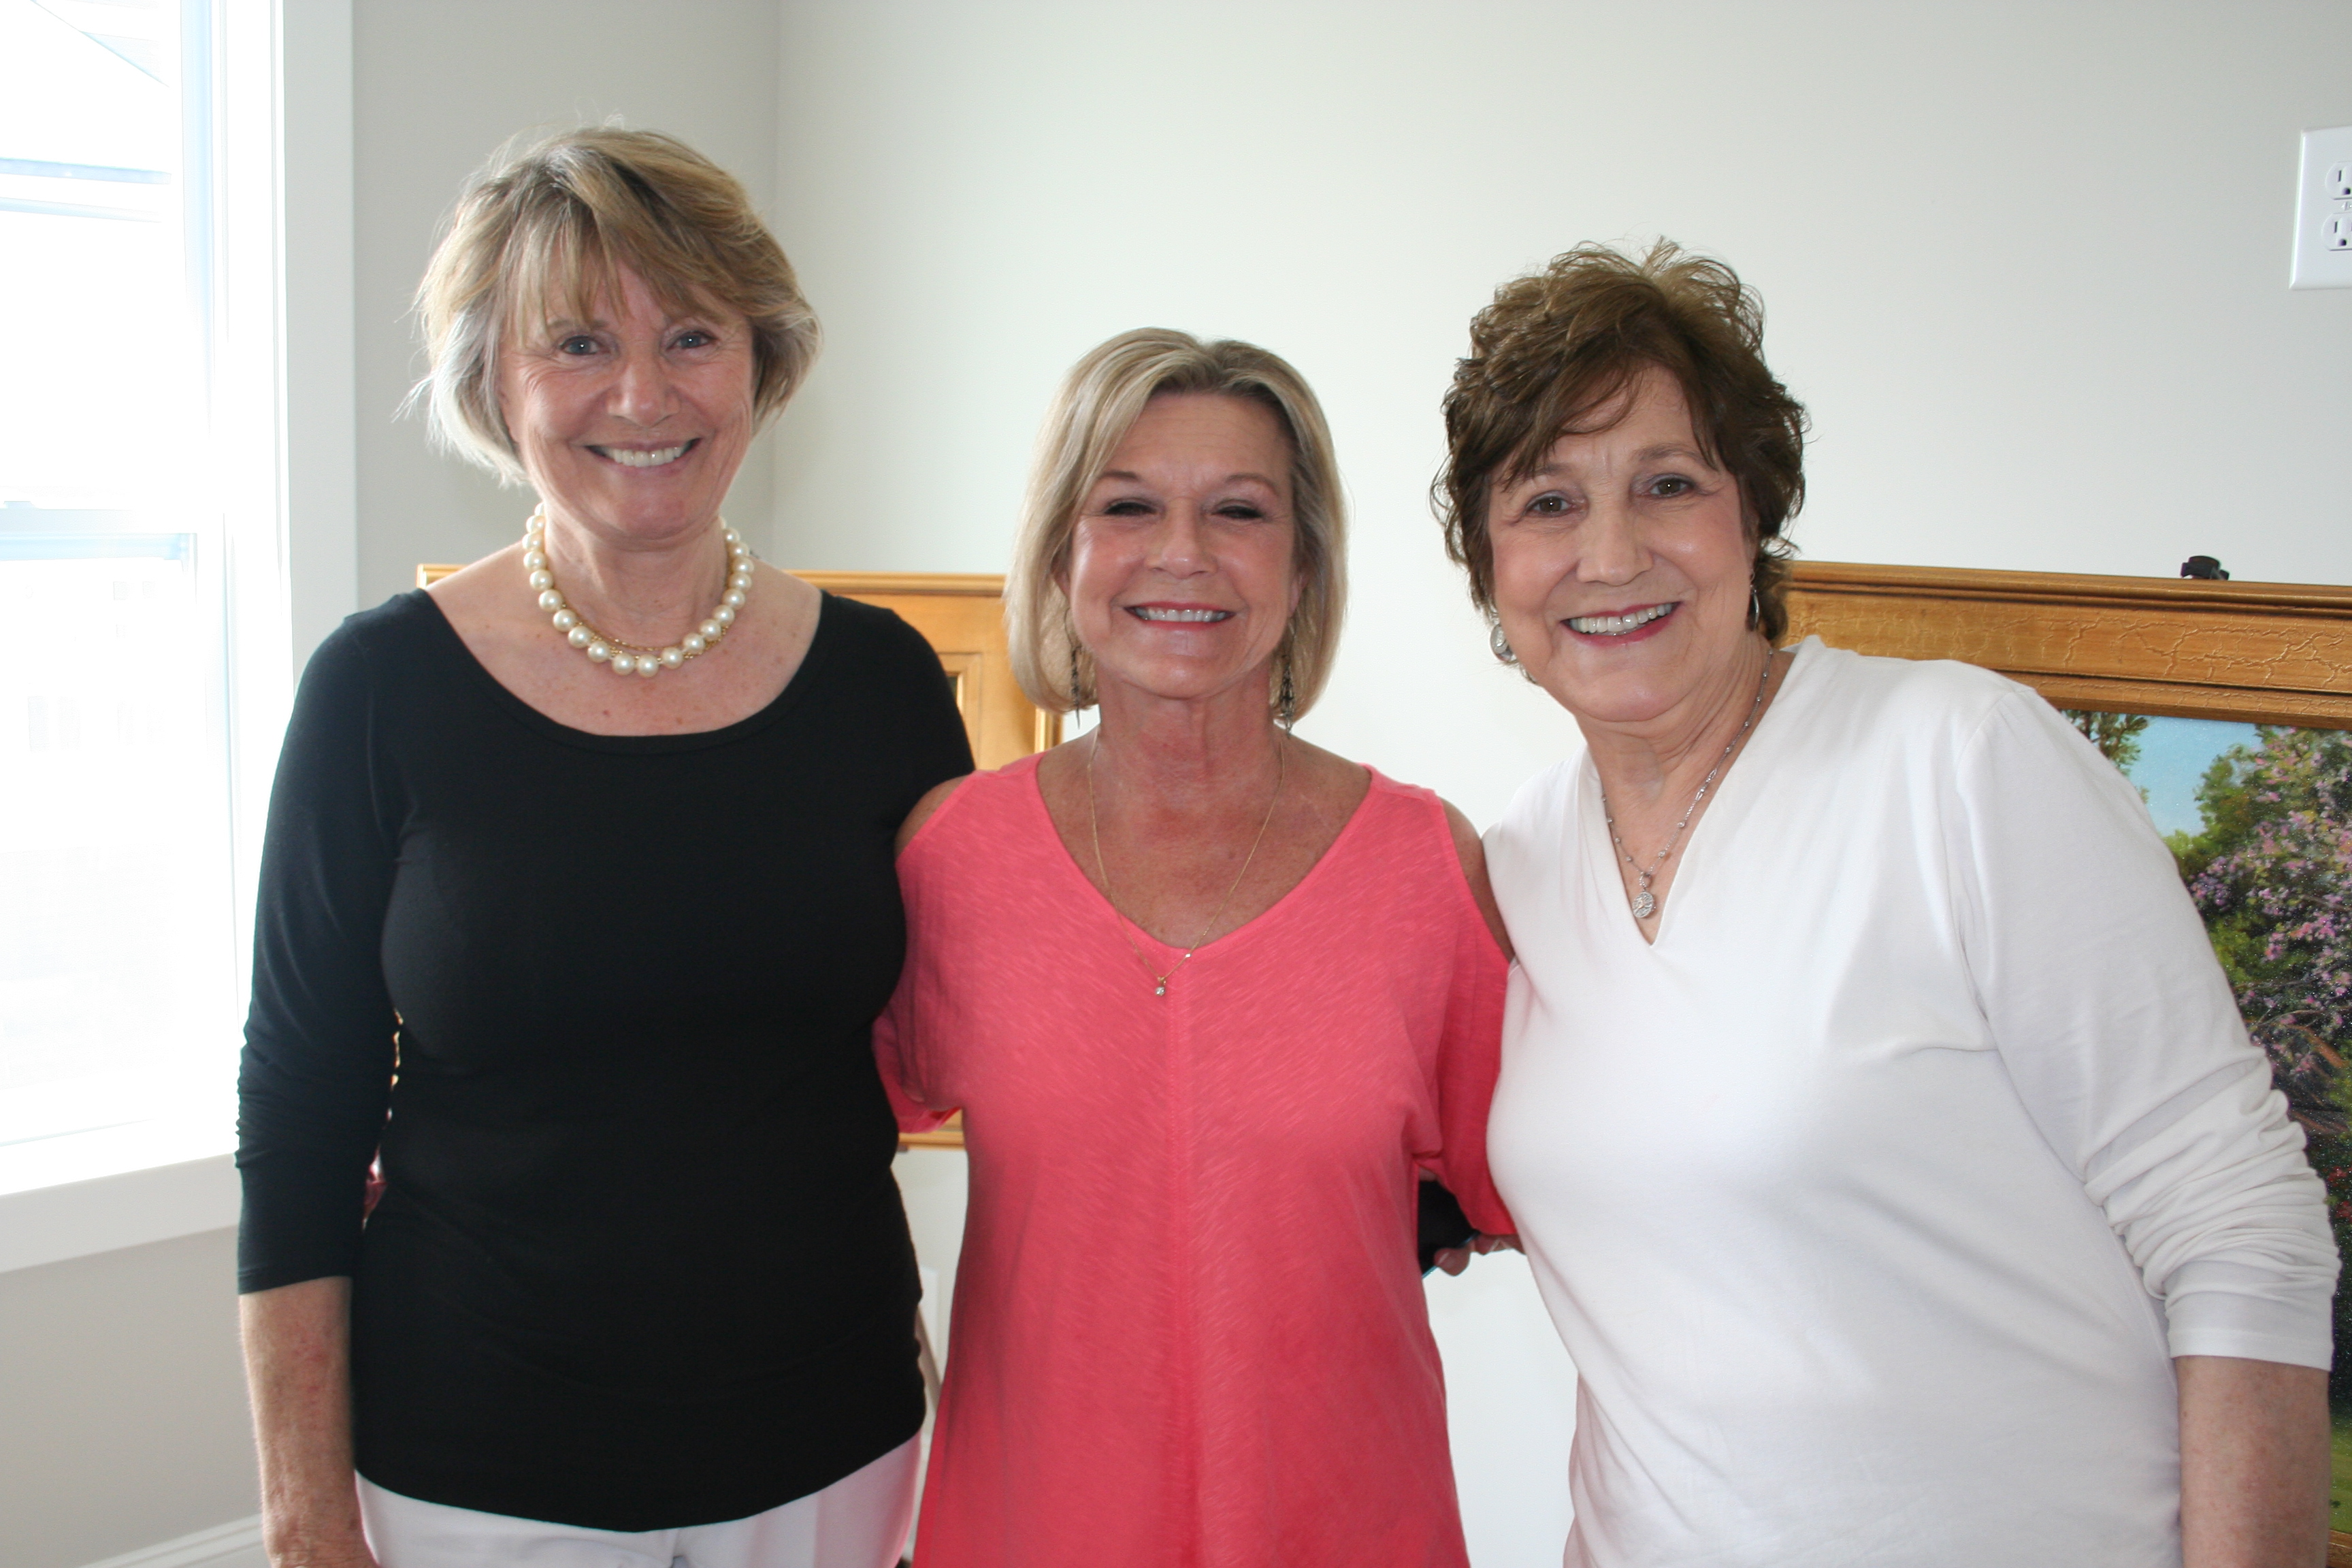 Artists Glenda Brown (left), Renee Magdelain (right), and Teresa Jones (center) all took part in the event by showcasing their works.